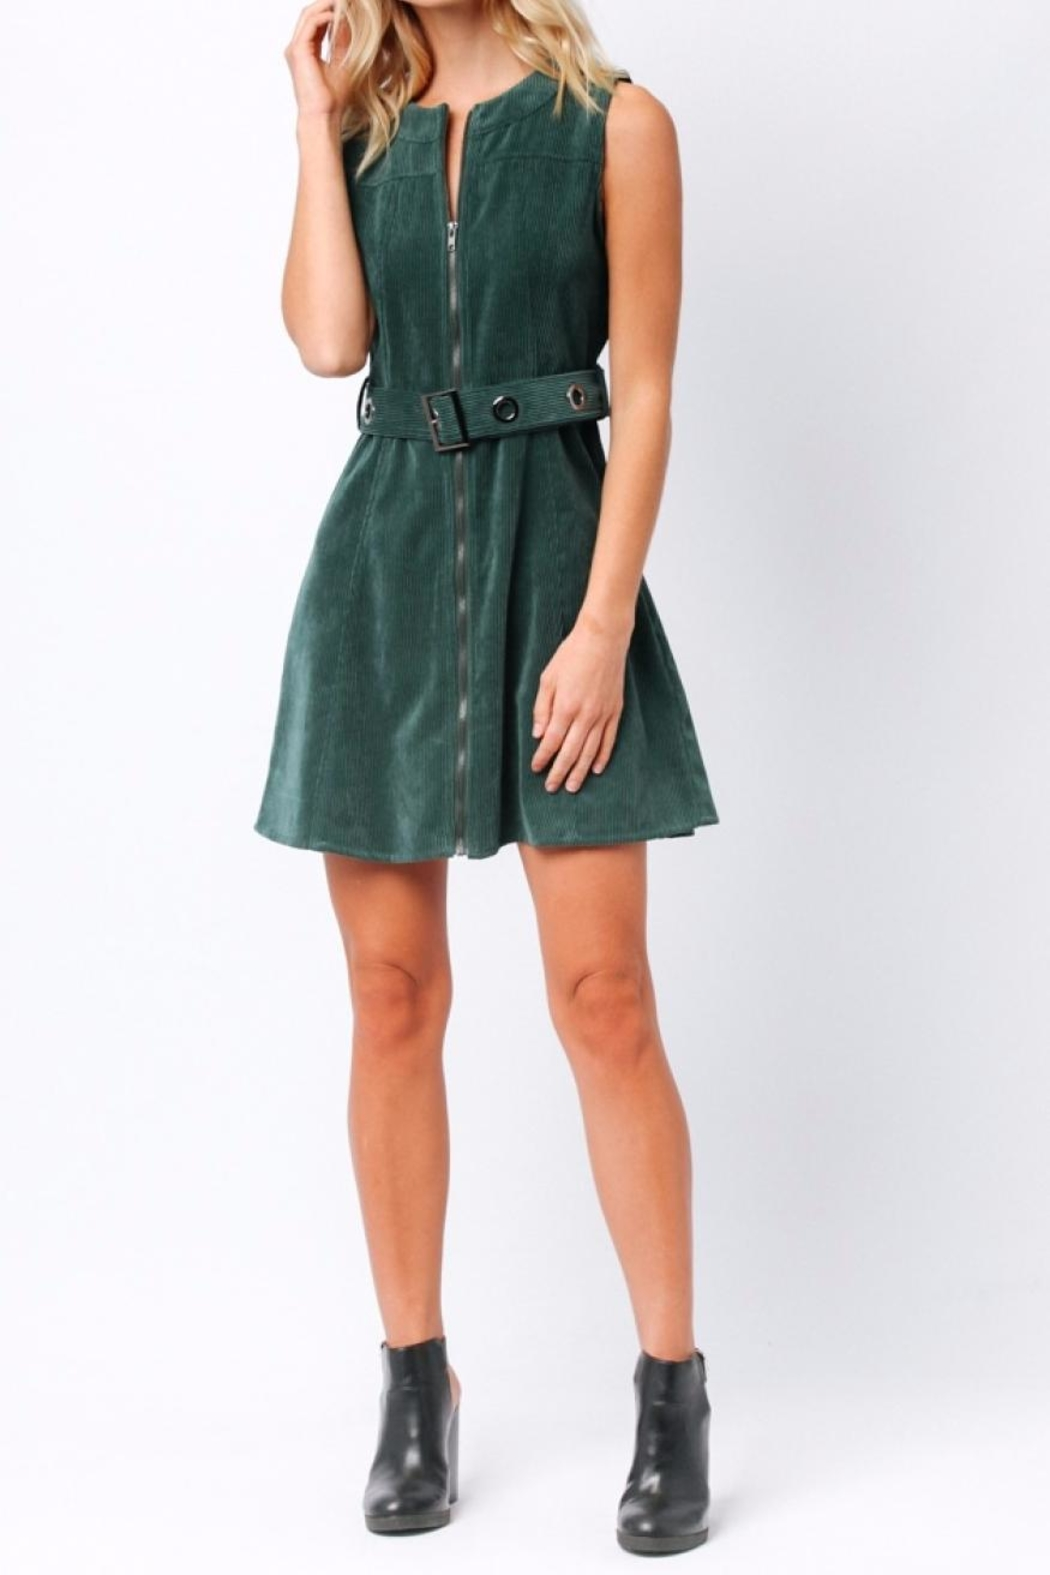 Paper Crane Green Corduroy Dress - Back Cropped Image